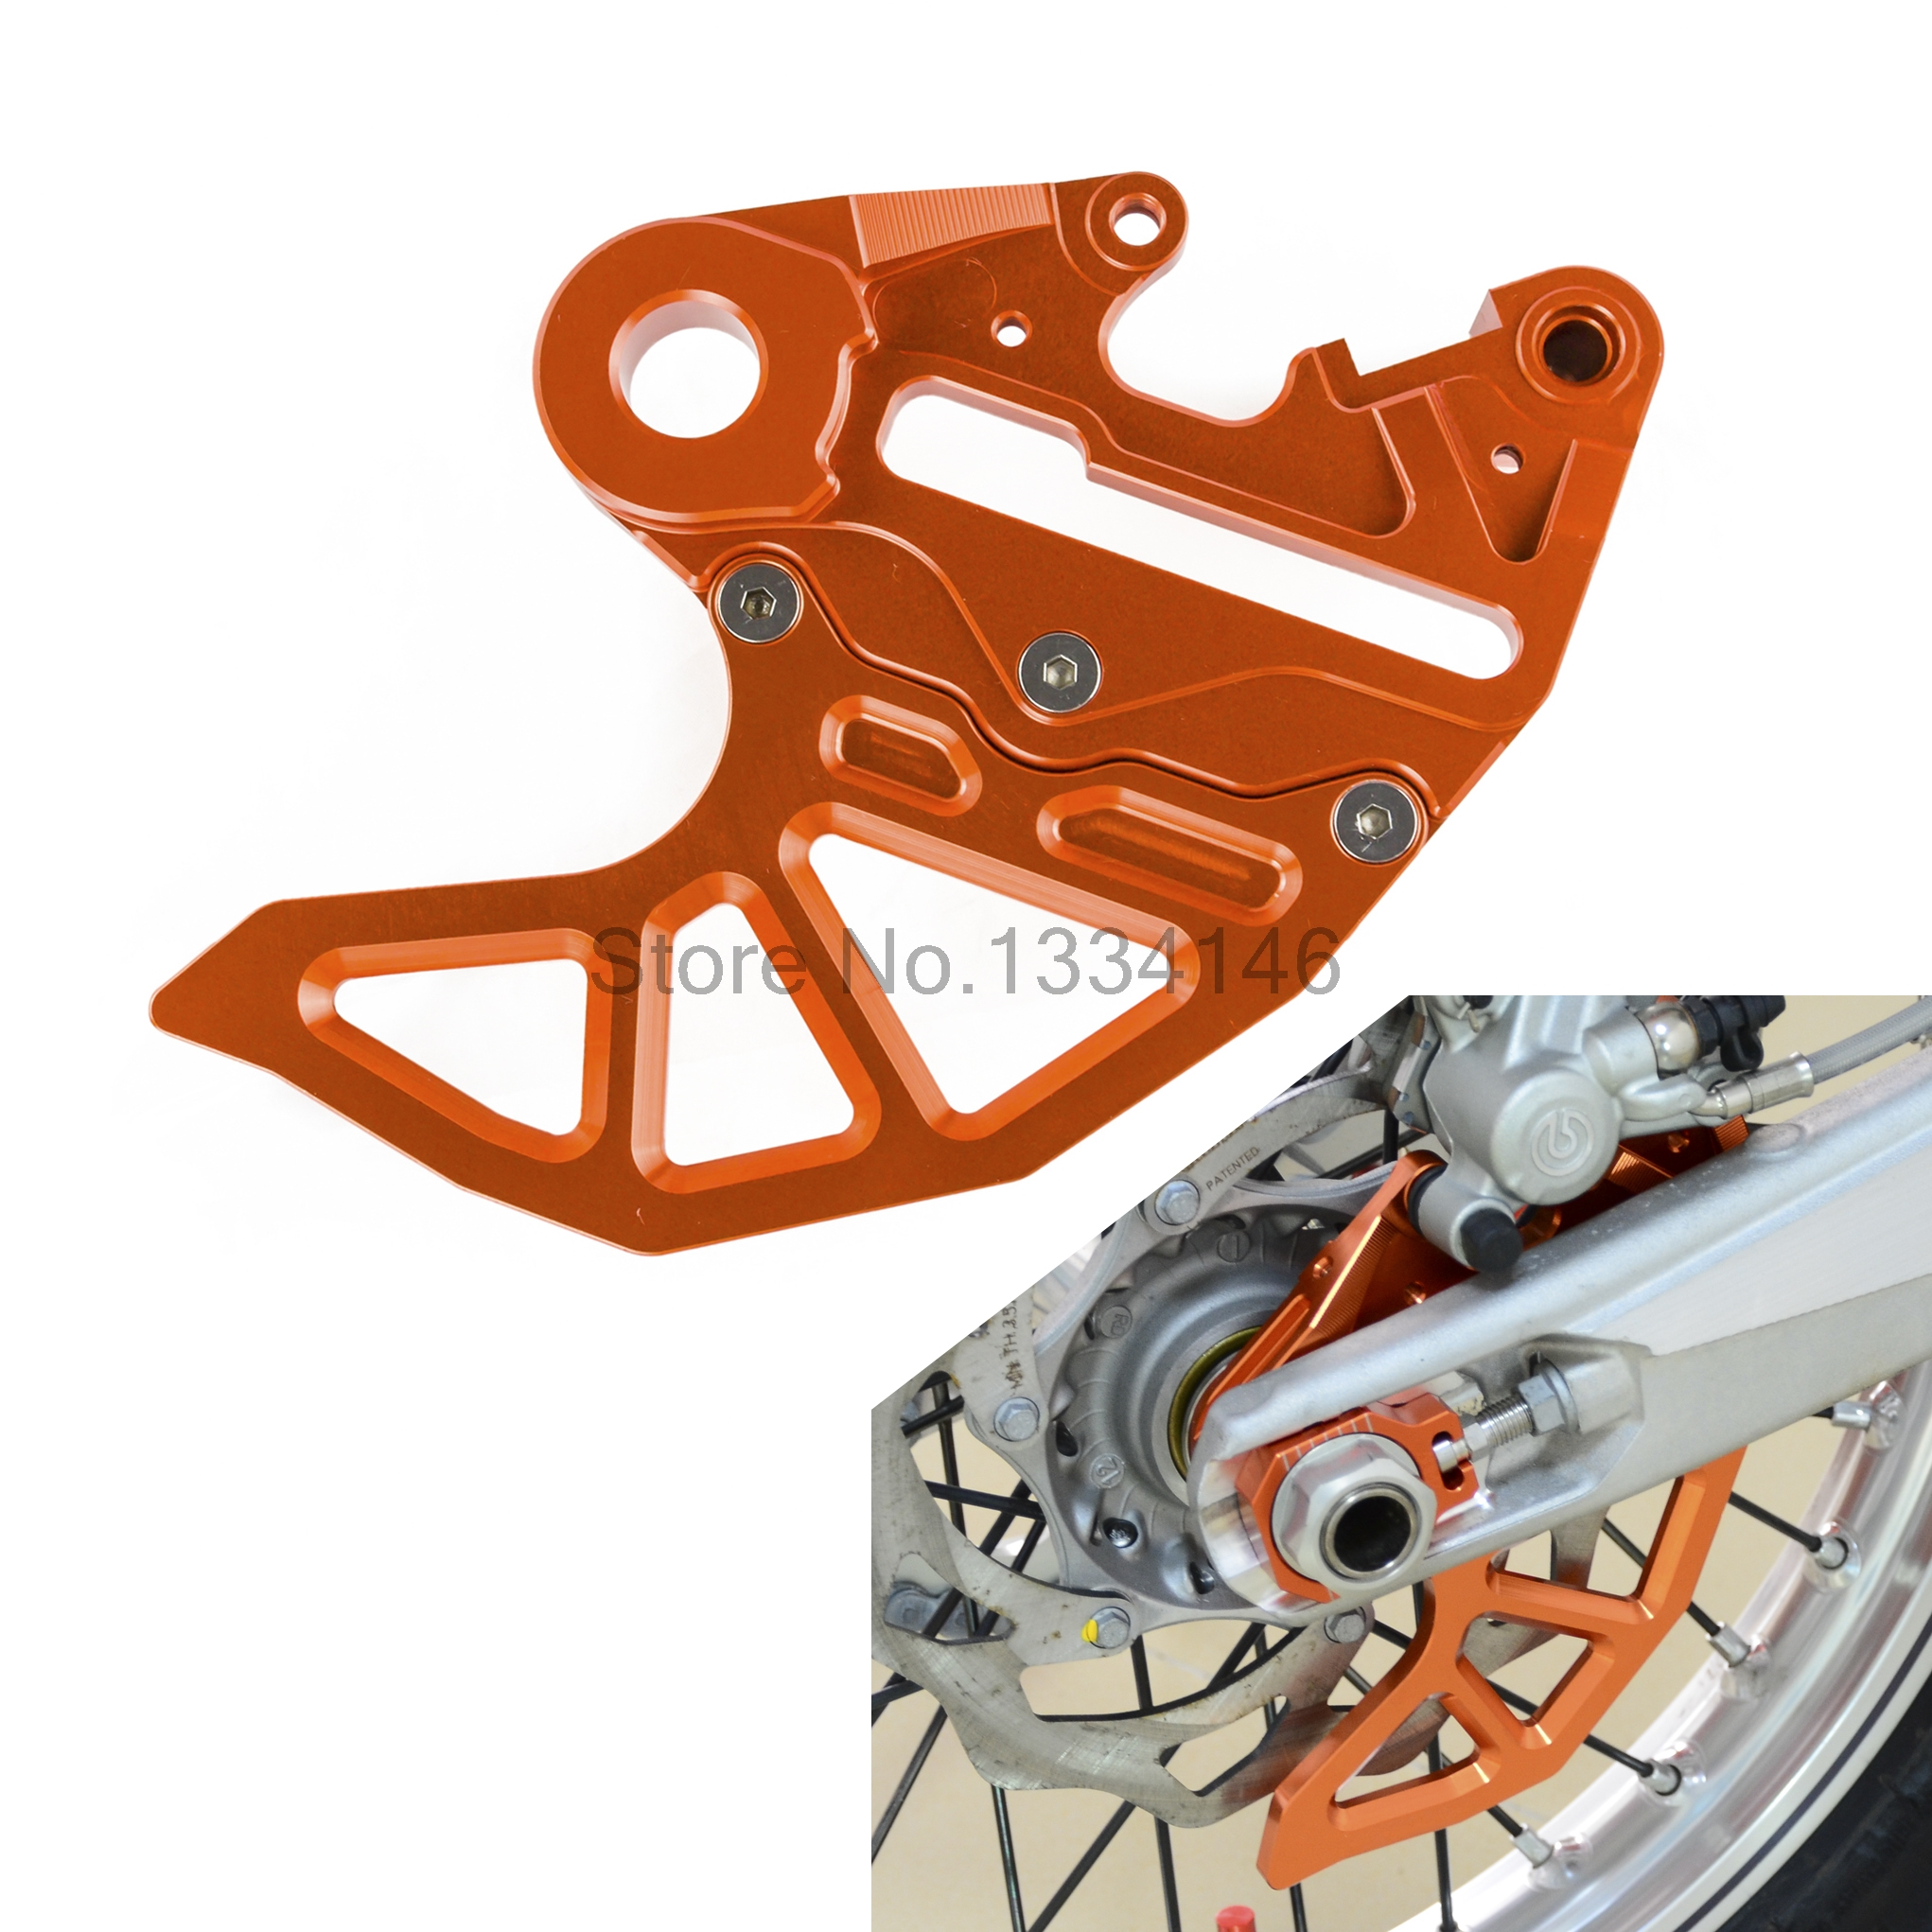 NICECNC Caliper Support Rear Brake Disc Guard For KTM 125 150 200 250 300 350 450 500 530 XC EXC XC-W EXC-F SX SX-F XCF-W XC-F billet axle blocks chain adjuster for ktm 125 150 200 250 300 350 400 450 500 505 525 530 exc exc f xc w xcw xcf w 2000 2015